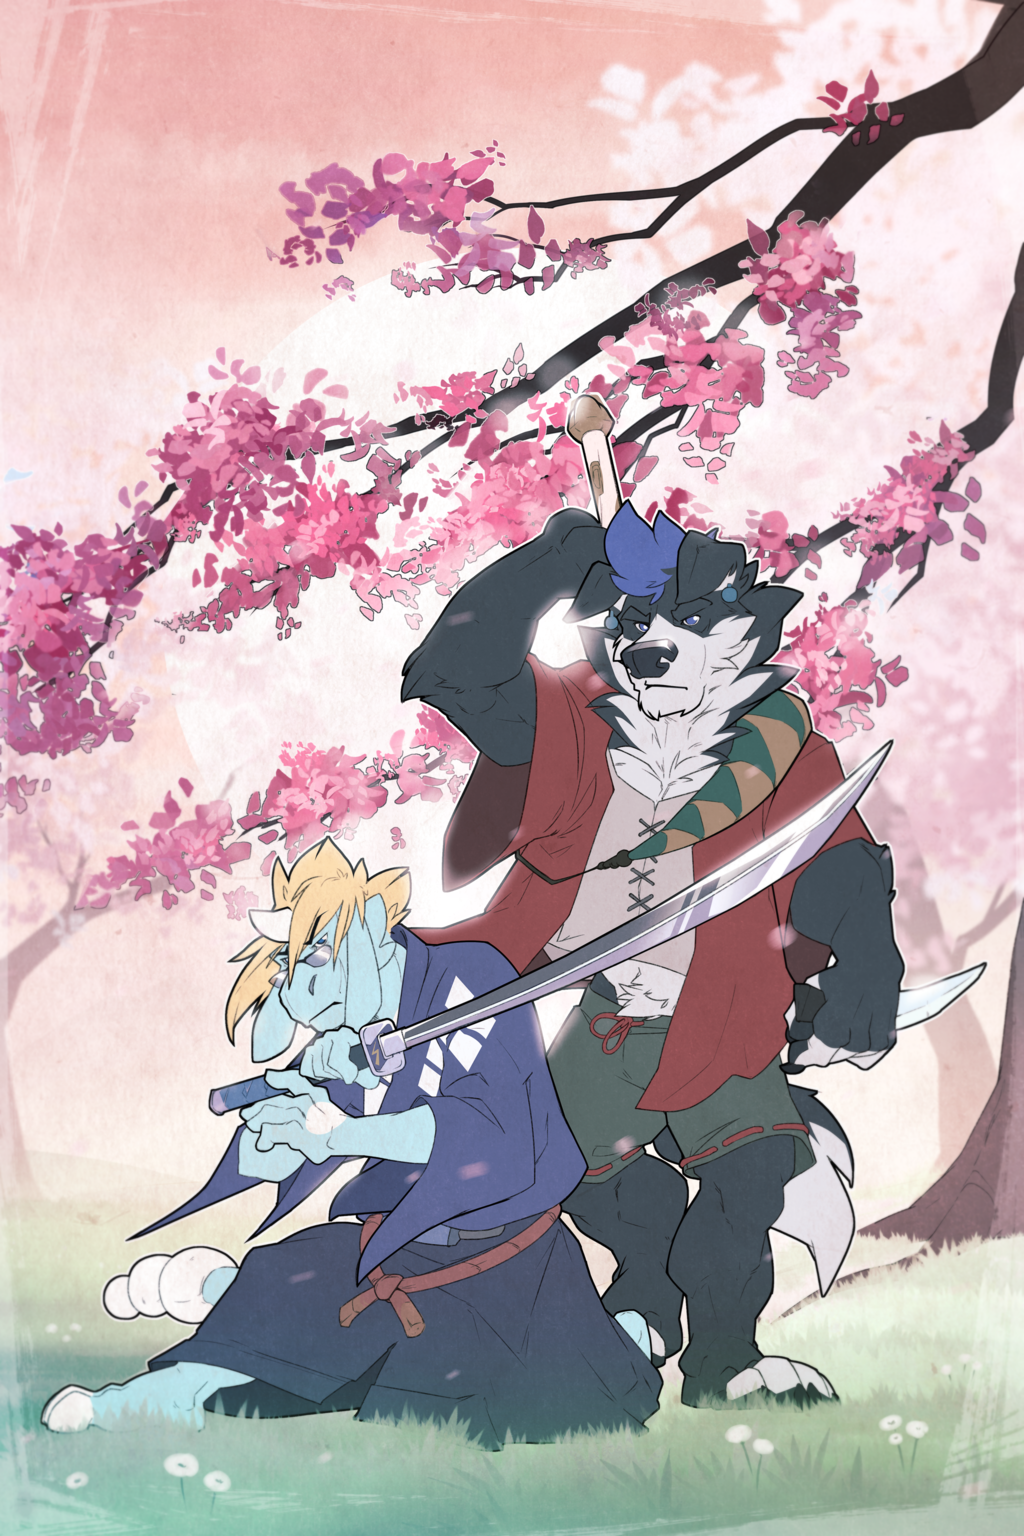 Most recent image: The Way of the Samurai